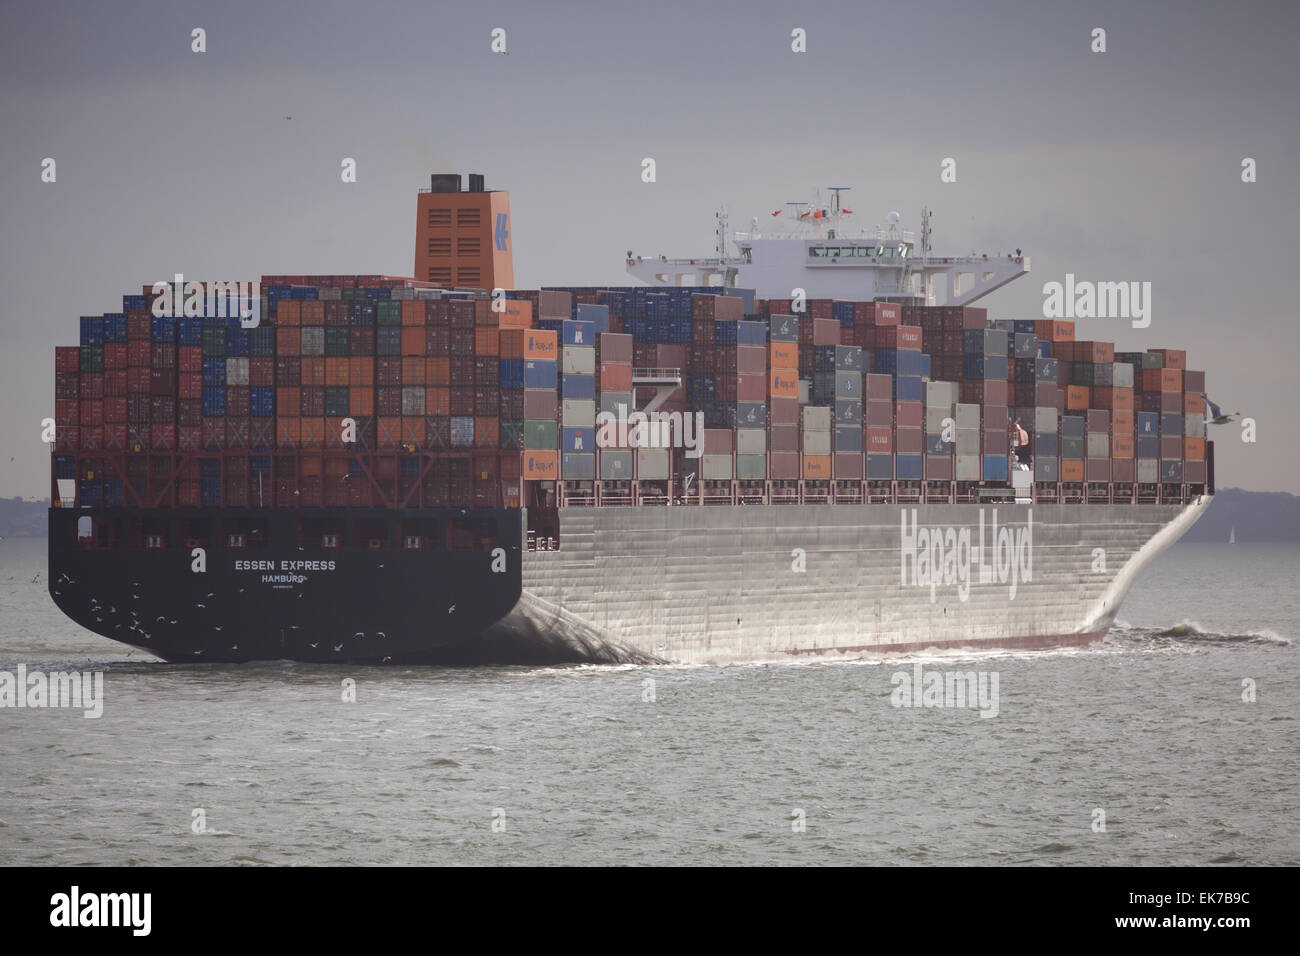 The cargo ship, Essen Express, departing Southampton Water in the Solent. - Stock Image